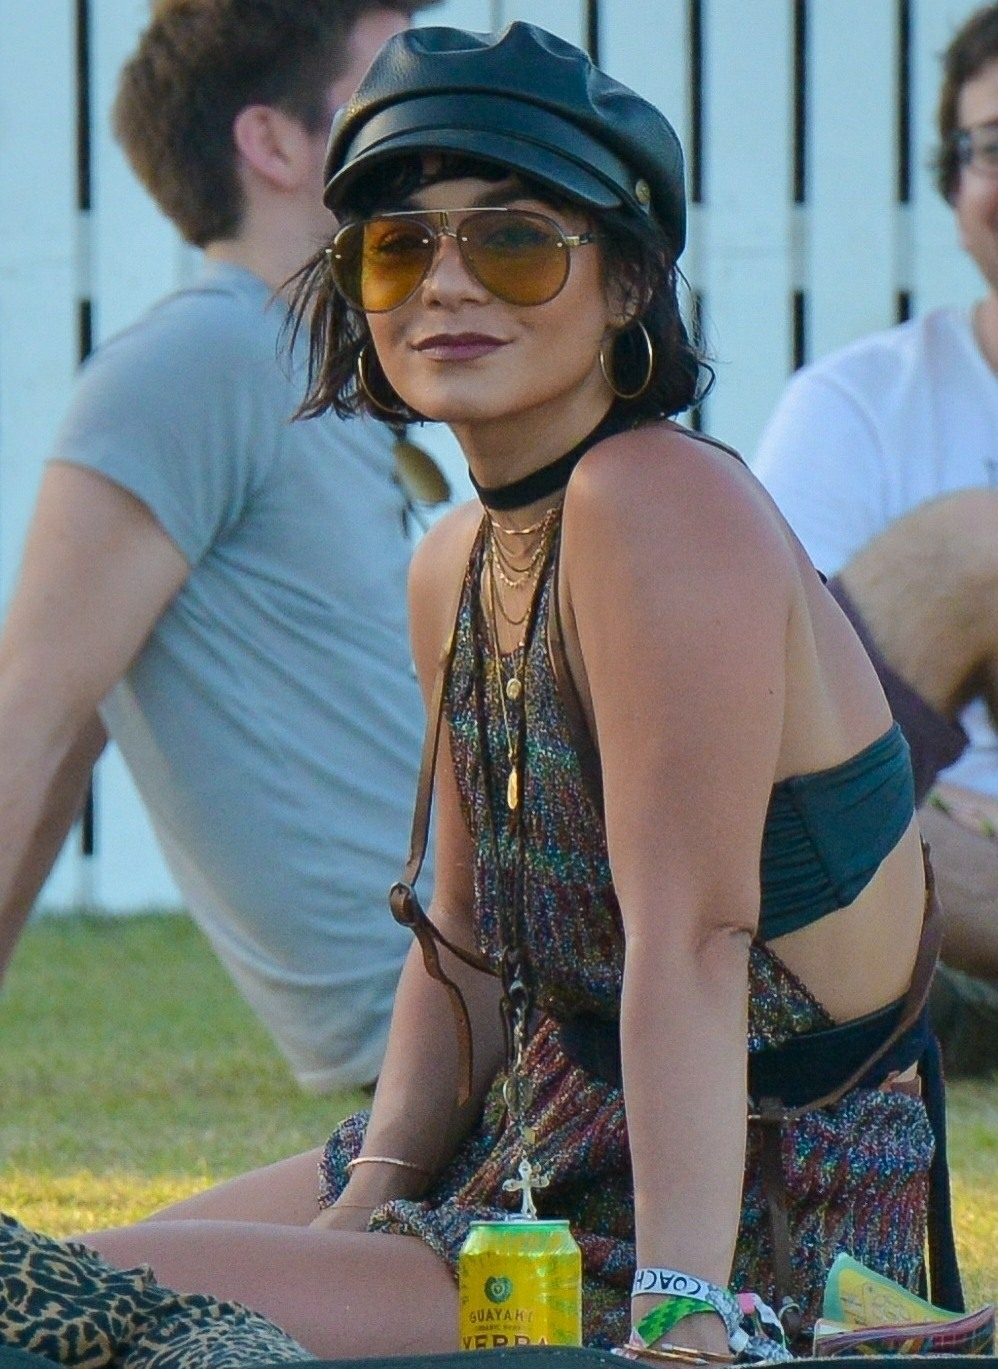 Vanessa Hudgens dances her heart out on the Polo Fields during Coachella Weekend 2